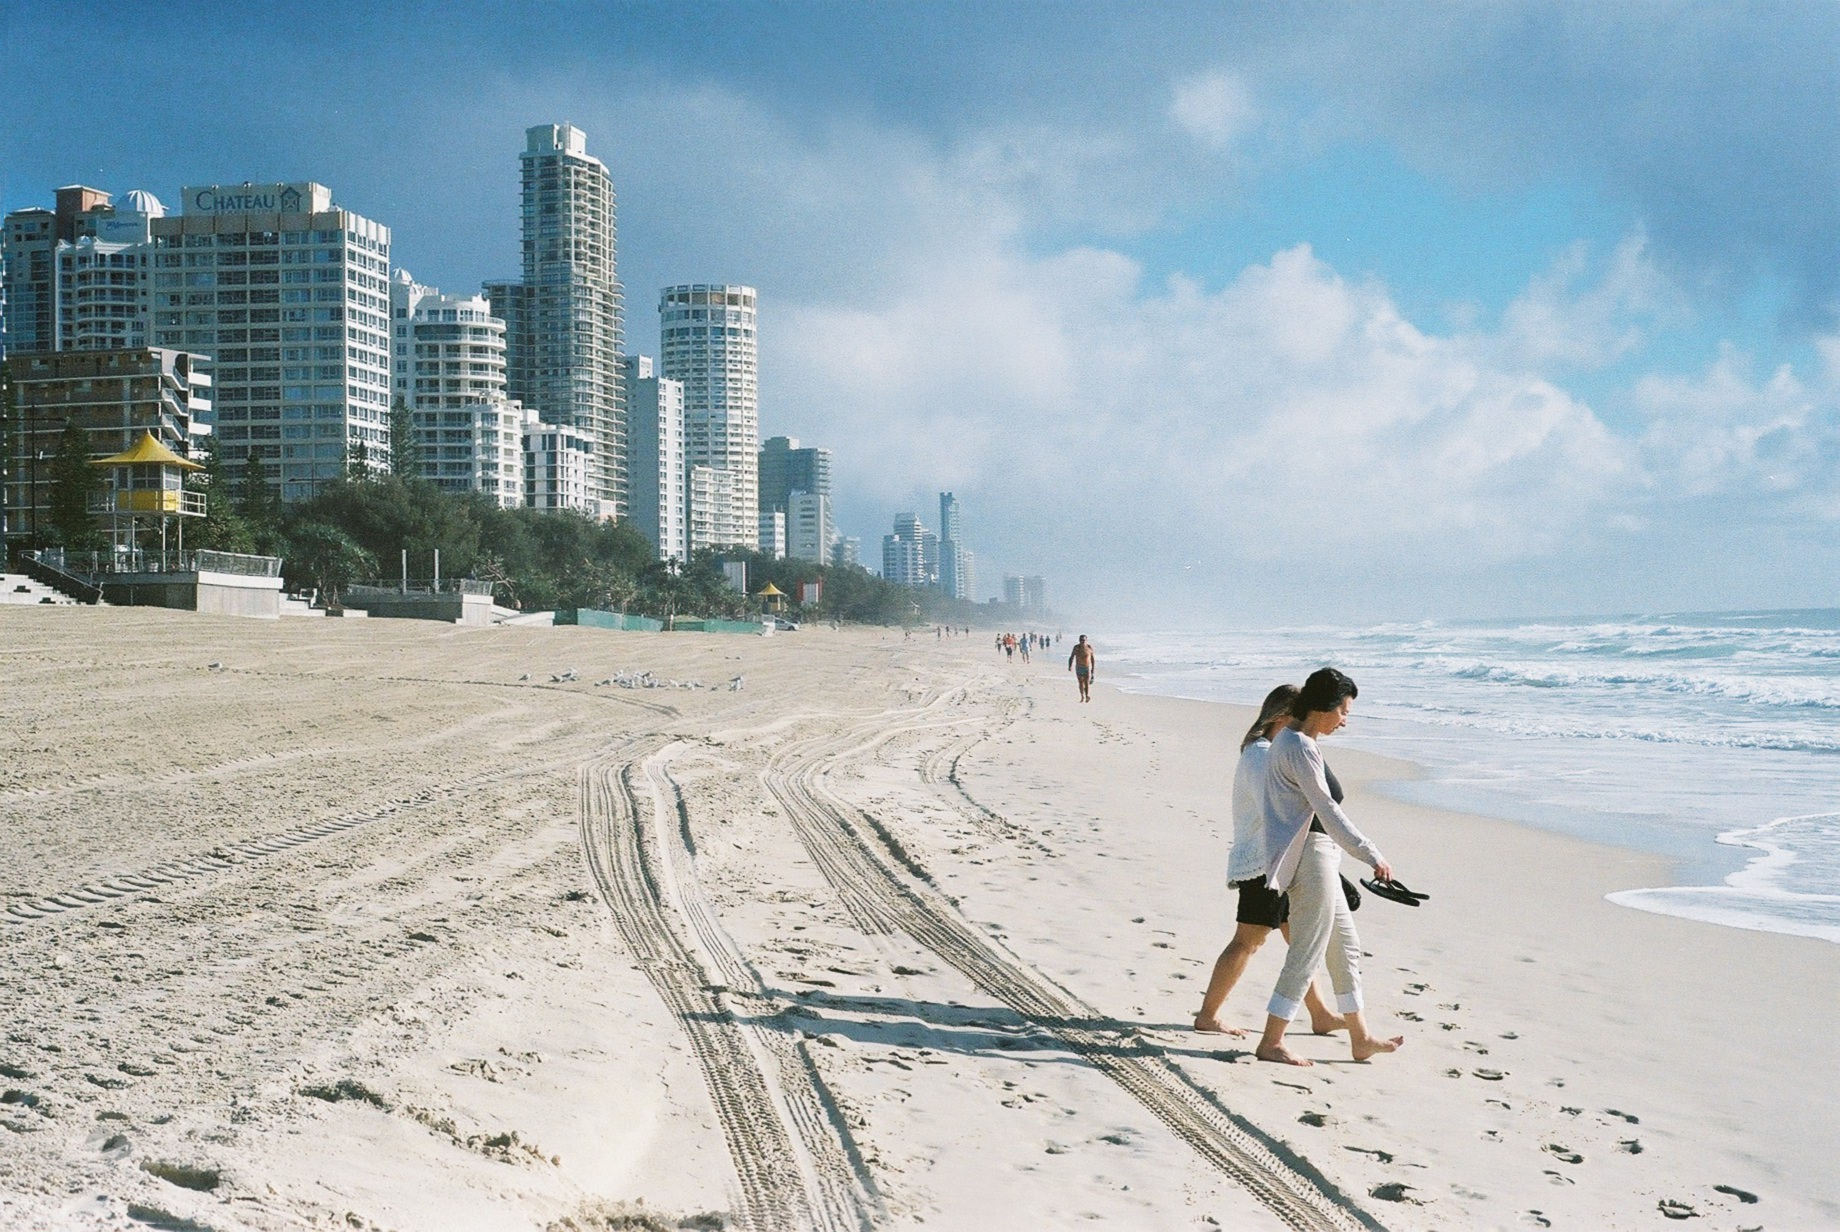 Two ladies walk towards the water on Gold Coast beach. High rise in the background.